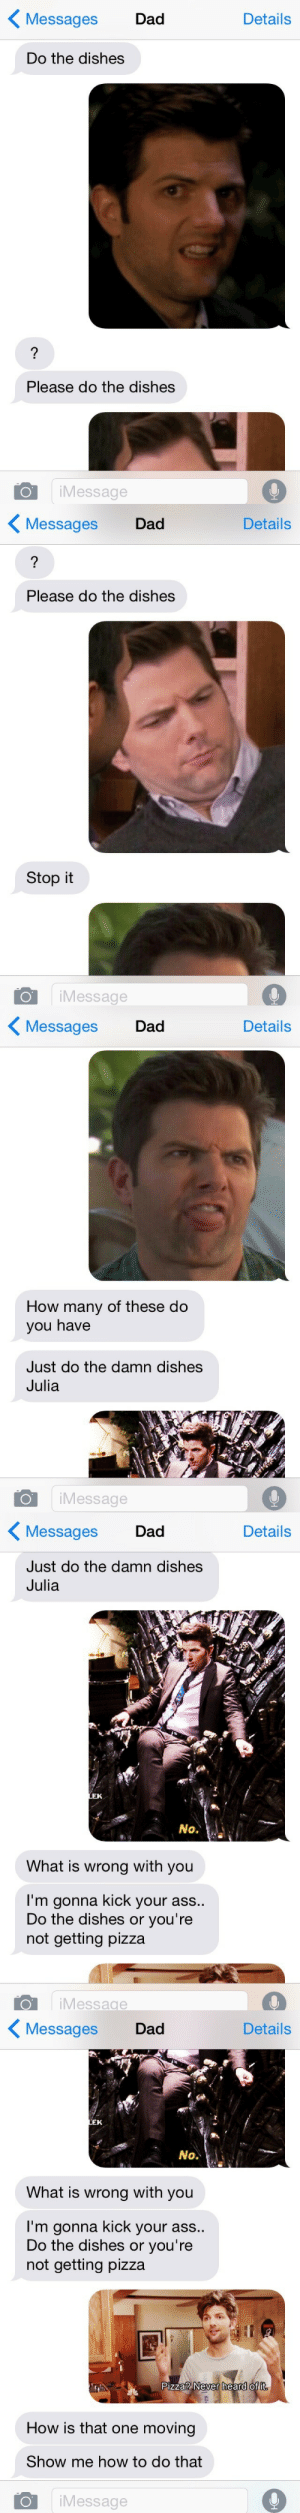 juliawiinchester:I've decided I'm only going to answer my dads texts with pictures of Ben Wyatt: < Messages  Dad  Details  Do the dishes  Please do the dishes  iMessage   〈 Messages  Dad  Details  Please do the dishes  Stop it  O iMessage   KMessages Dad  Details  How many of these do  you have  Just do the damn dishes  Julia  Message   Messages Dad  Details  Just do the damn dishes  Julia  EK.  No.  What is wrong with you  I'm gonna kick your ass.  Do the dishes or you're  not getting pizza  iMessage   〈Messages Dad  Details  EK  No.  What is wrong with you  I'm gonna kick your ass..  Do the dishes or you're  not getting pizza  Pizza?Never heard of it  How is that one moving  Show me how to do that  O iMessage juliawiinchester:I've decided I'm only going to answer my dads texts with pictures of Ben Wyatt